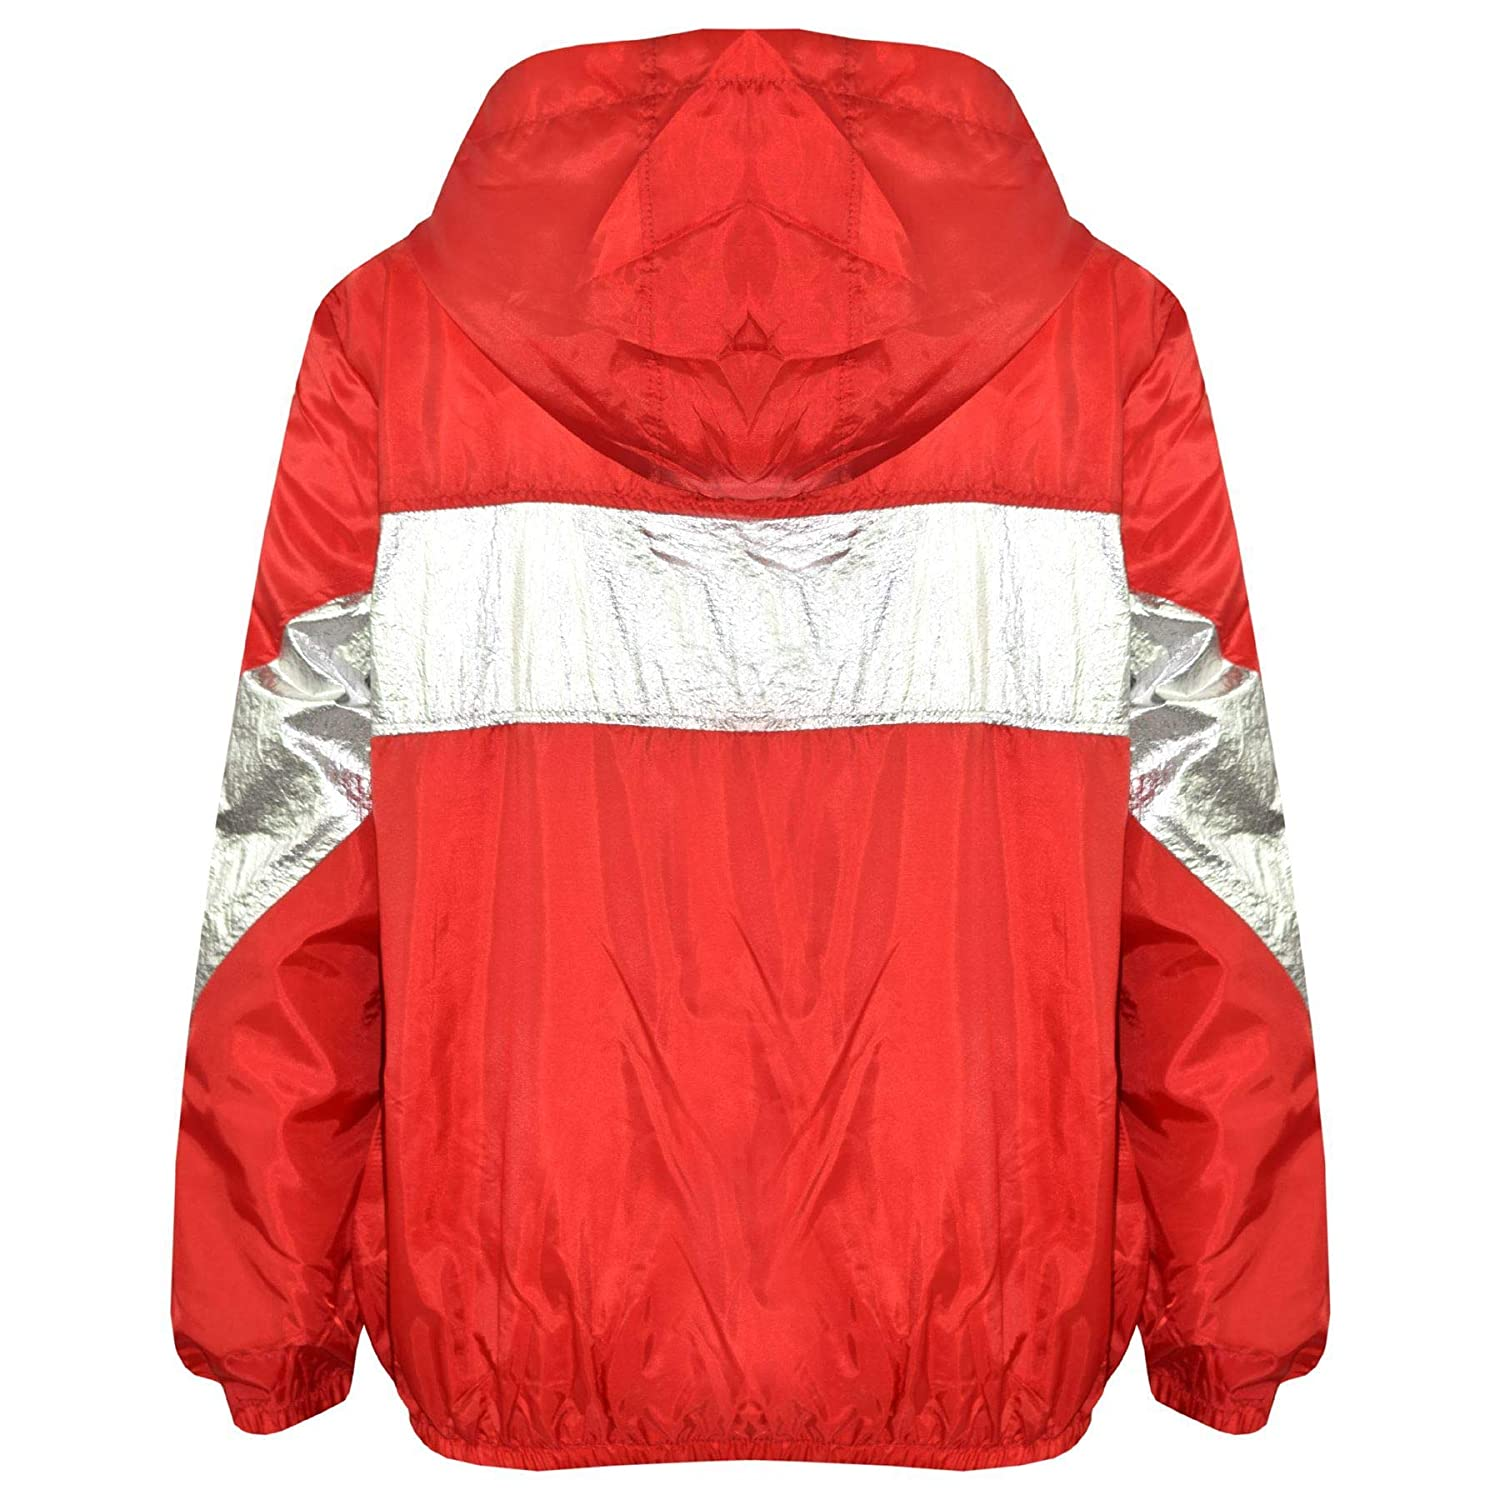 Kids Girls Boys Windbreaker Jackets Block Contrast Hooded Red Cagoule Raincoats